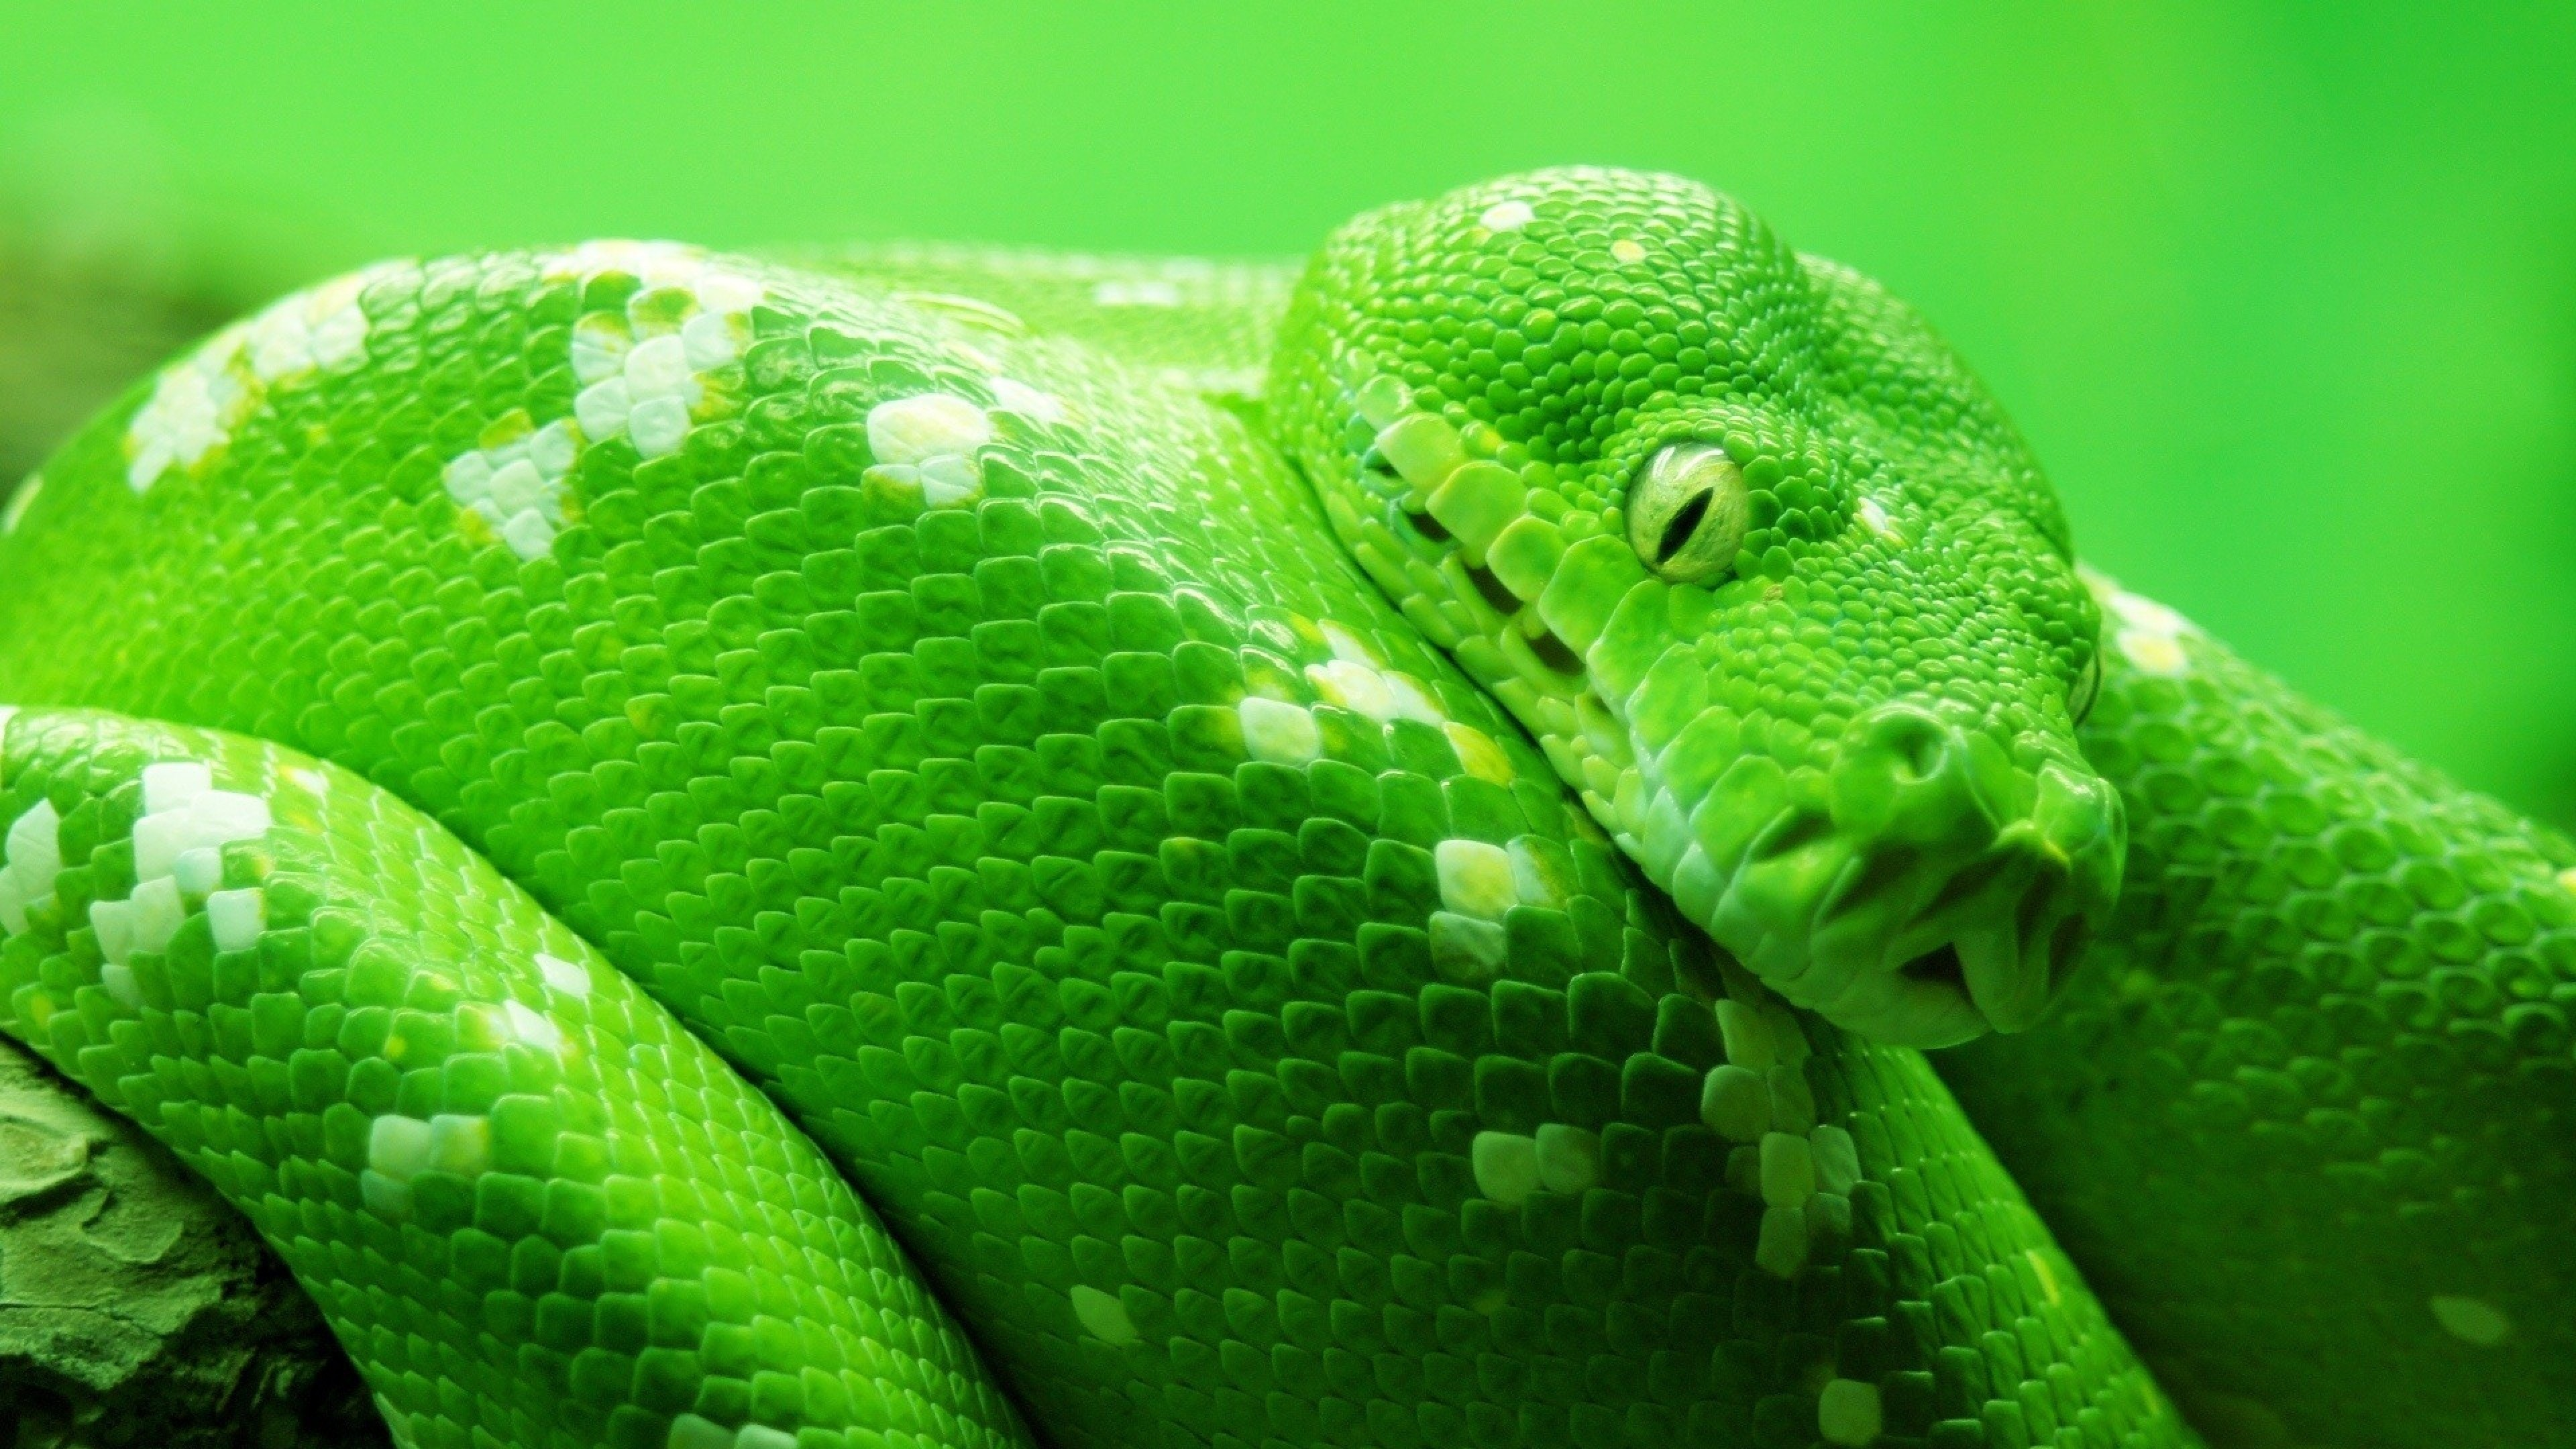 Cute Red Wallpaper For Iphone Wallpaper Snake Green 4k Animals 14978